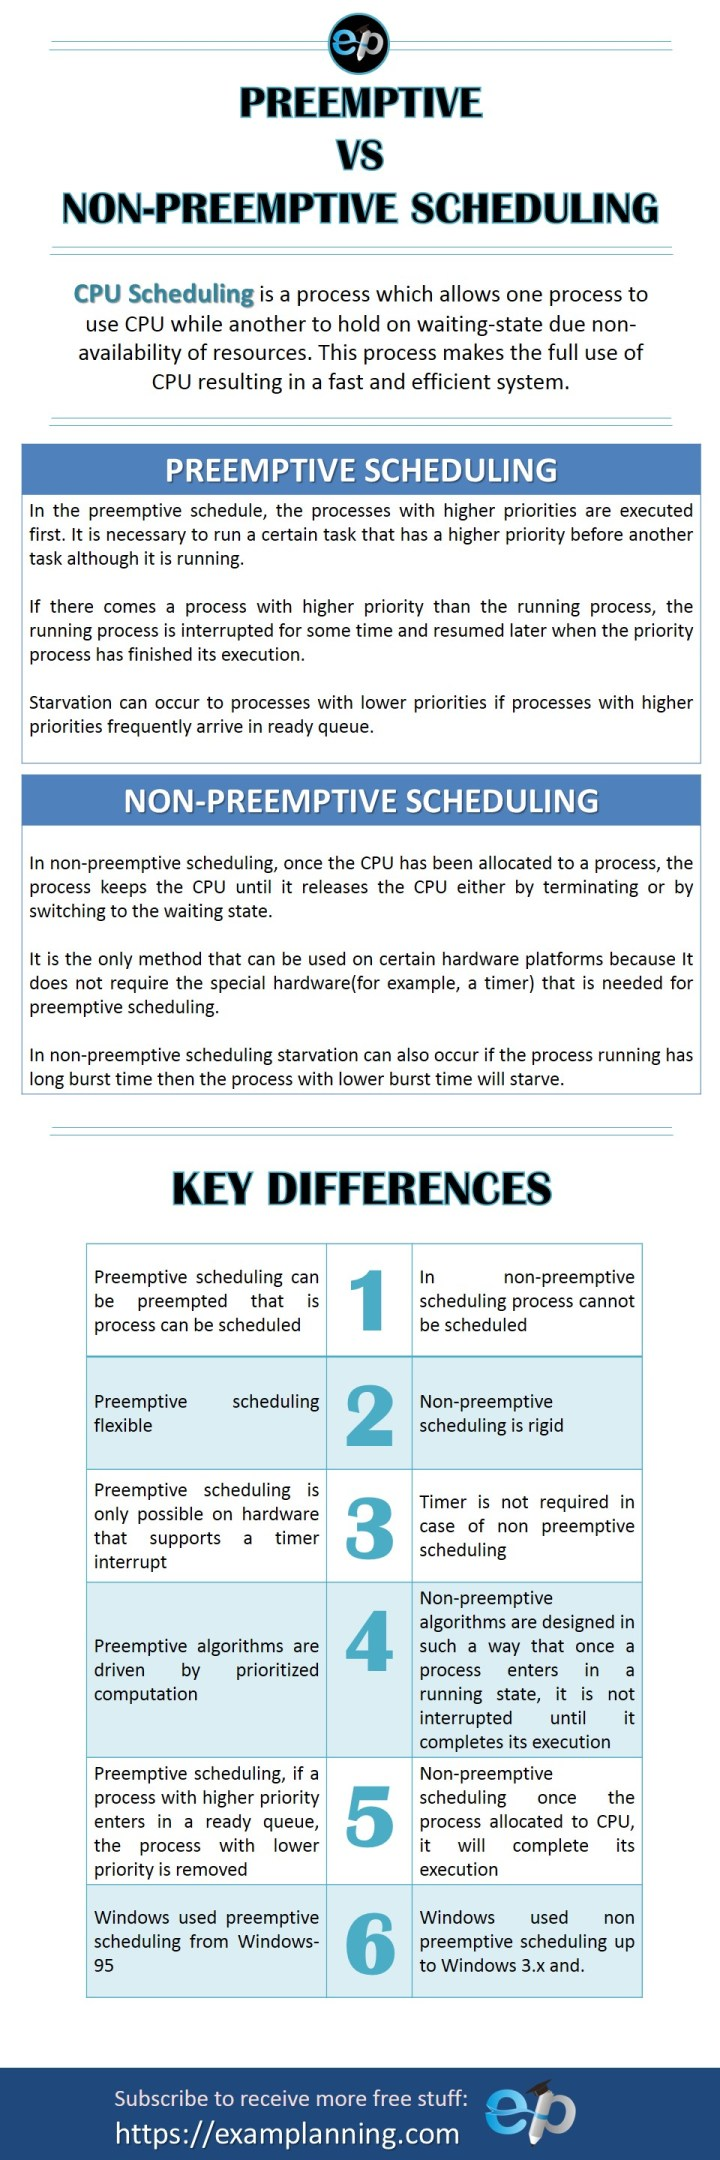 difference between preemptive and non-preemptive scheduling